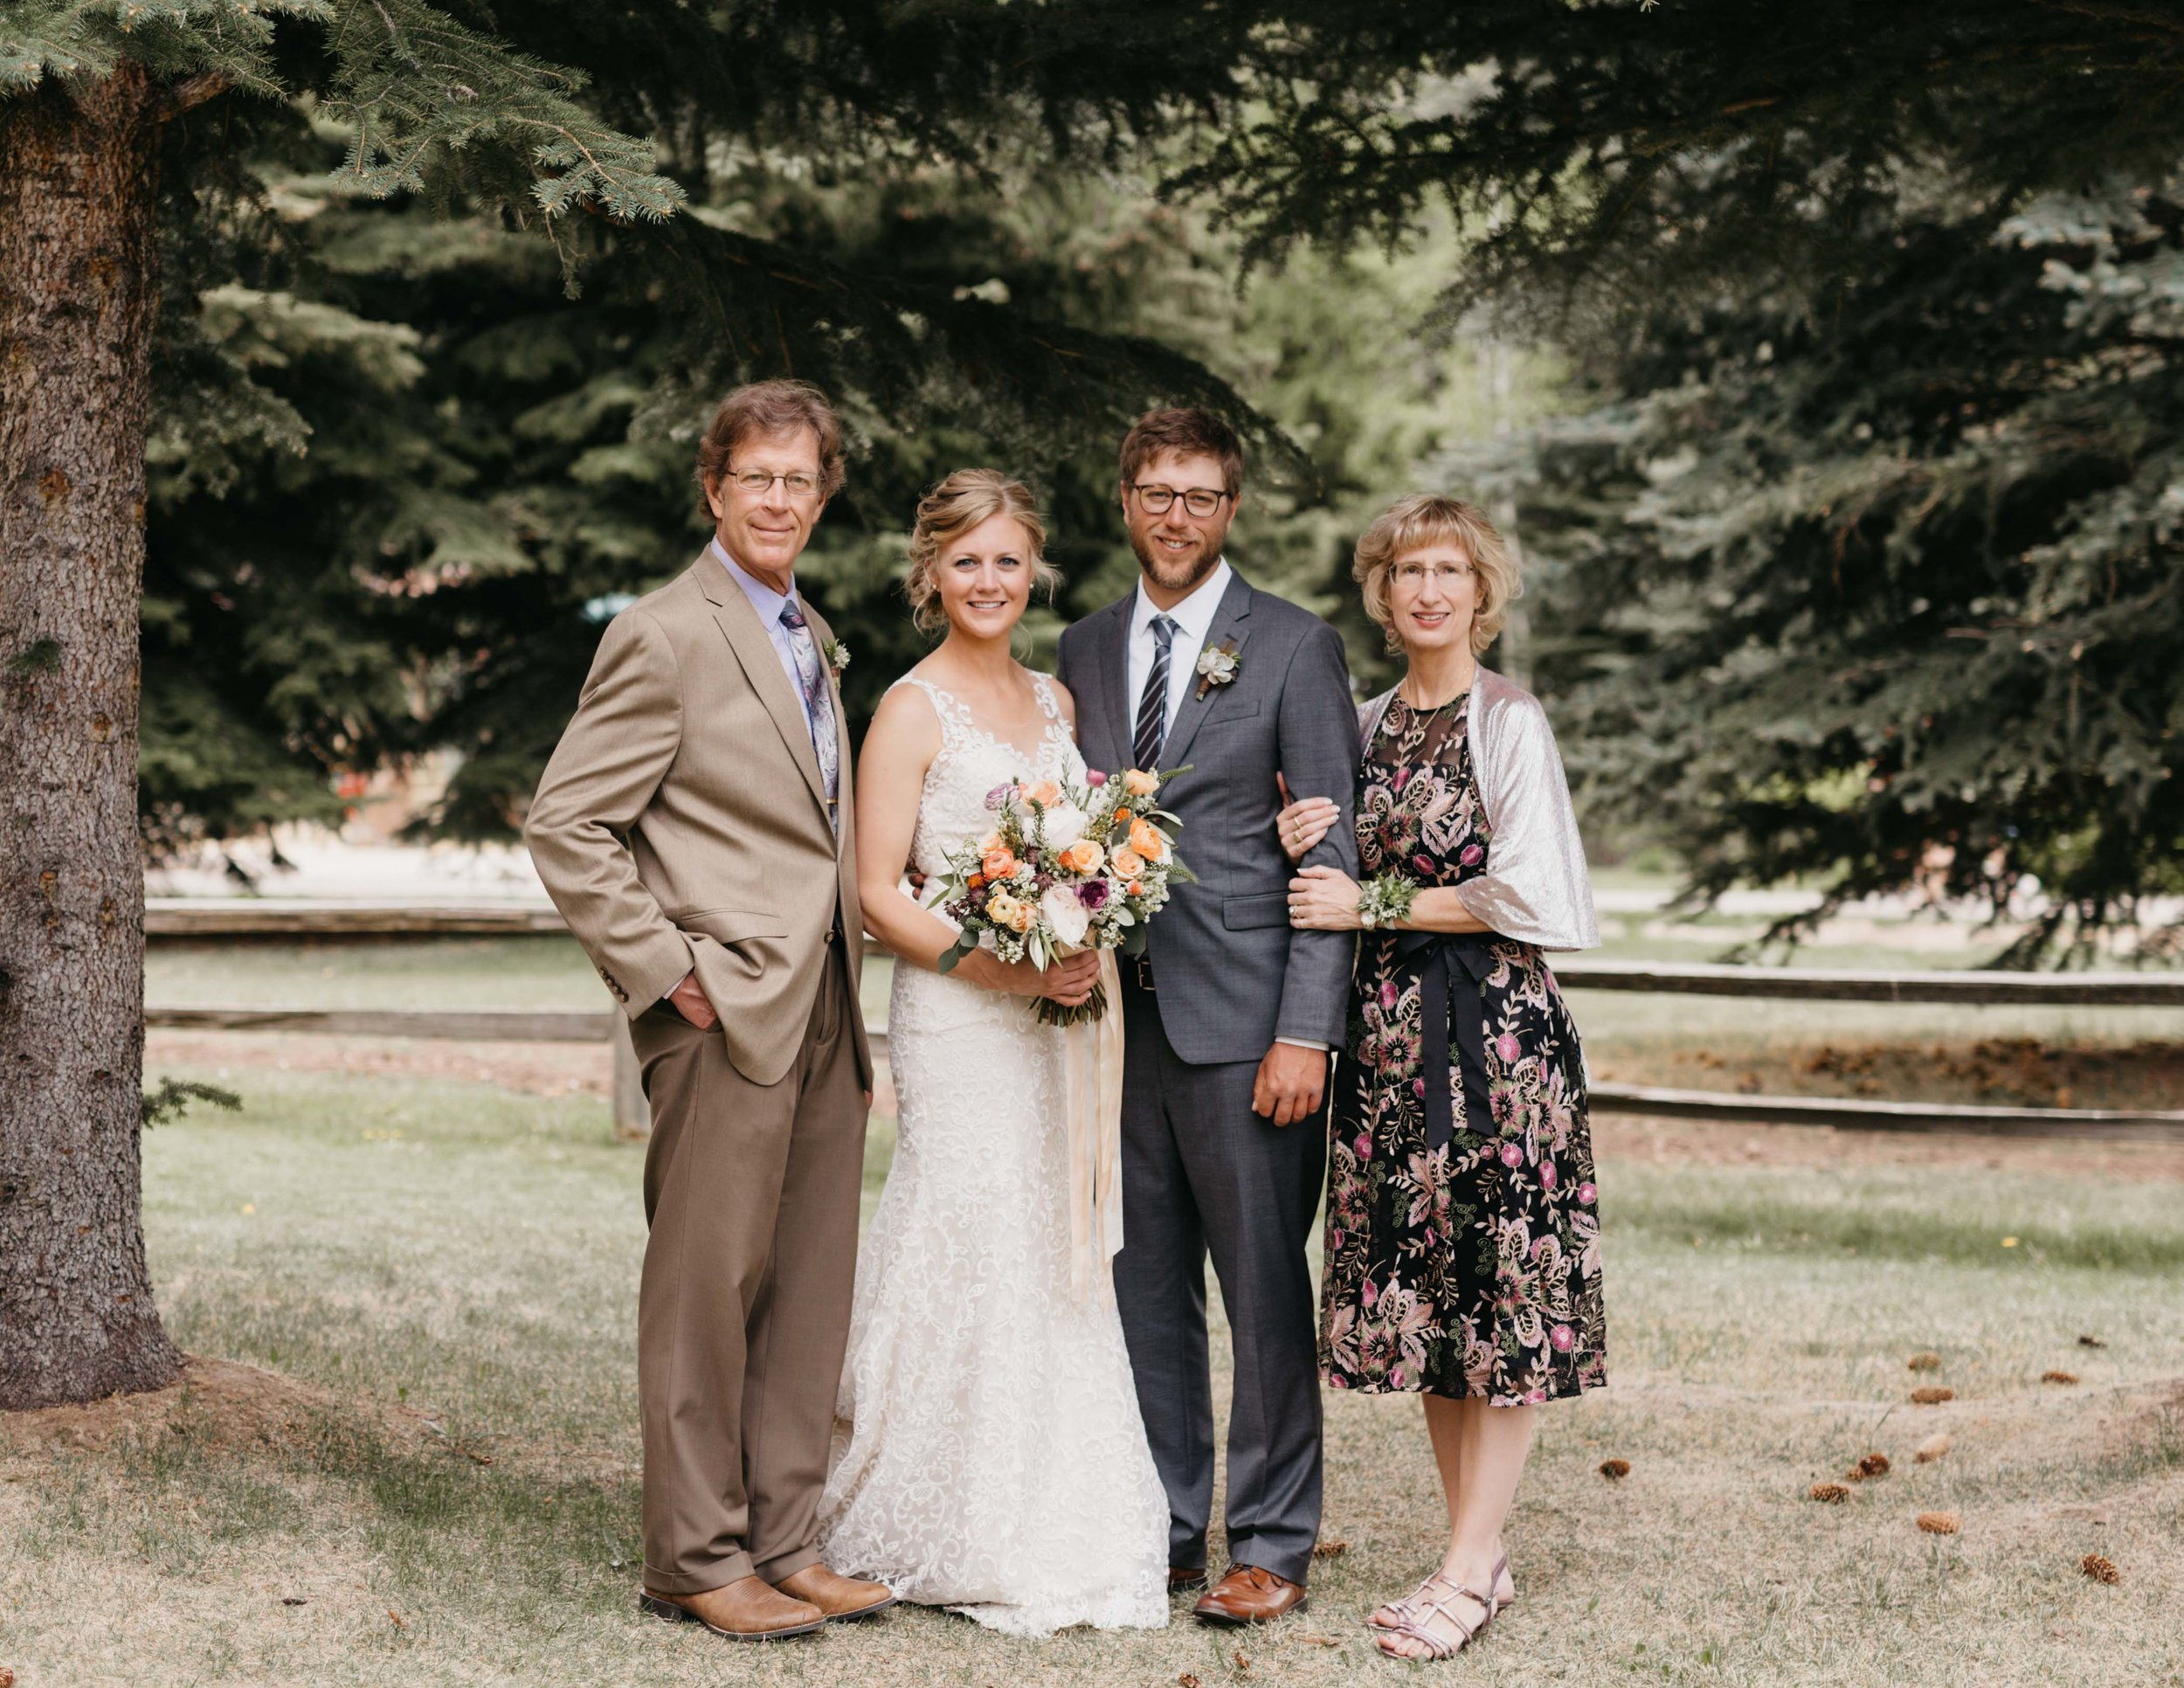 Colorado-Wedding-Photographer-42.jpg